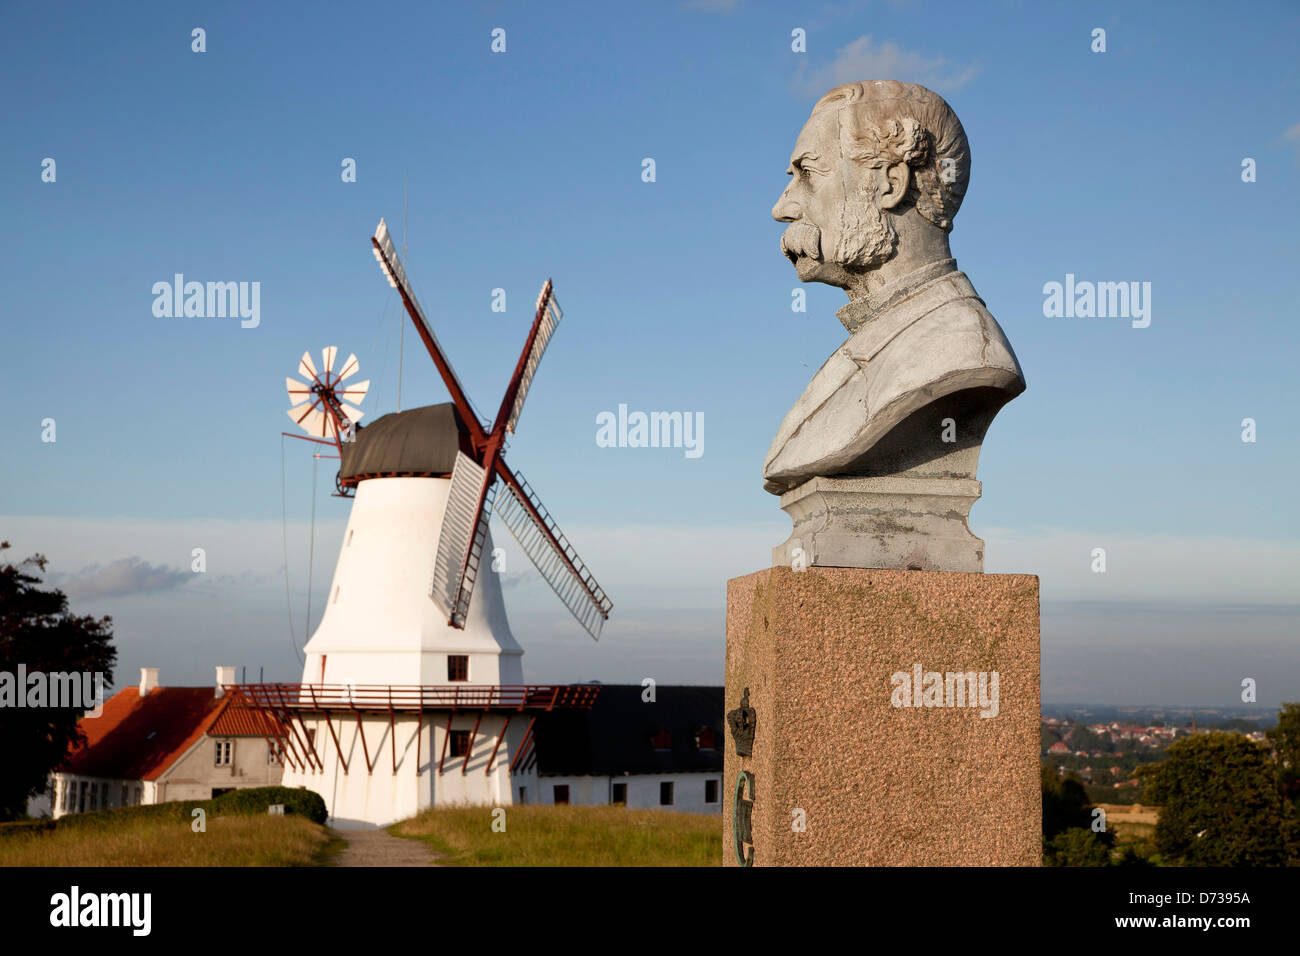 Dybbøl Mølle Windmill, museum and significant Danish memorial on the cultural heritage managed - Stock Image